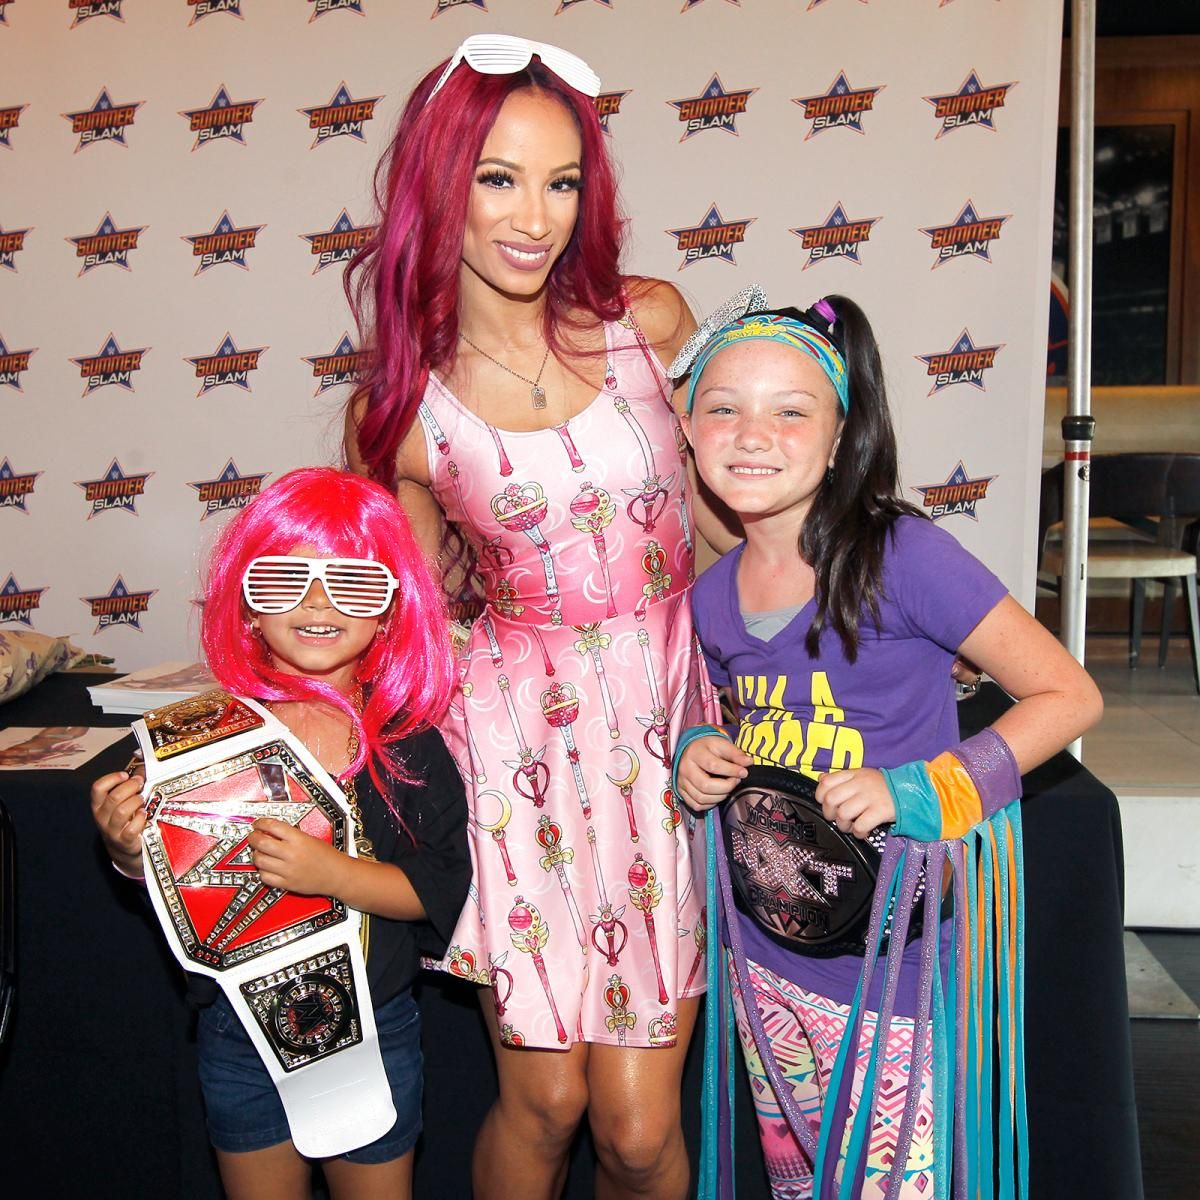 Dean ambrose and sasha banks host a vip signing at barclays center the wwe world champion and wwe womens champion welcomed members of the wwe universe to barclays center for an autograph signing and meet and greet kristyandbryce Choice Image